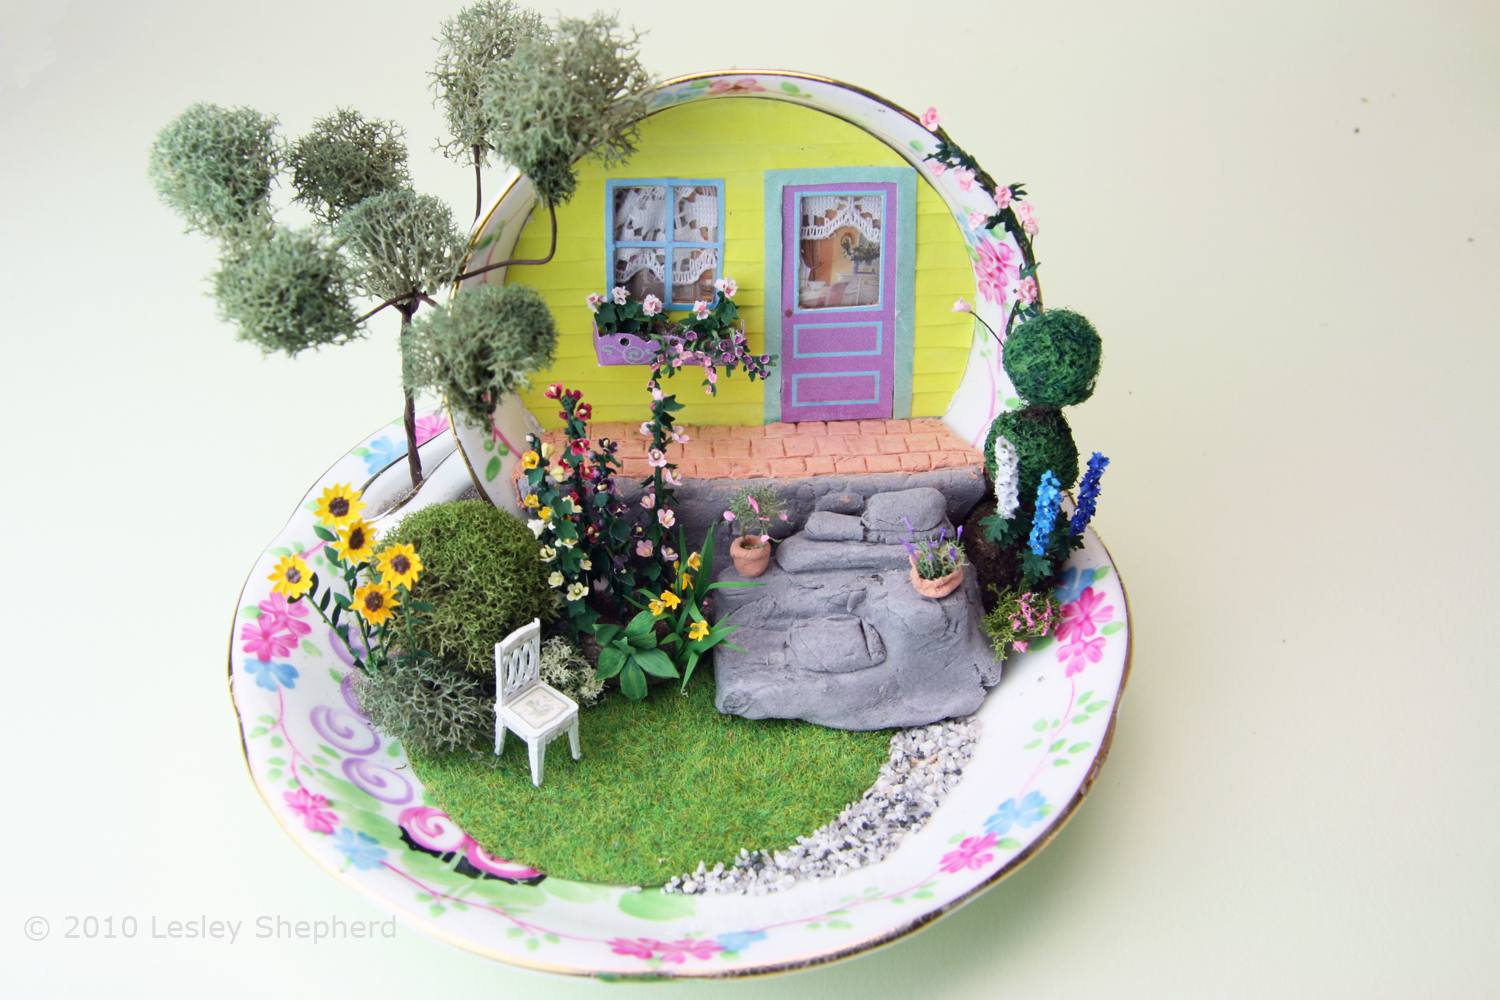 A 1:48 scale landscaped garden and cottage built in a tea cup.